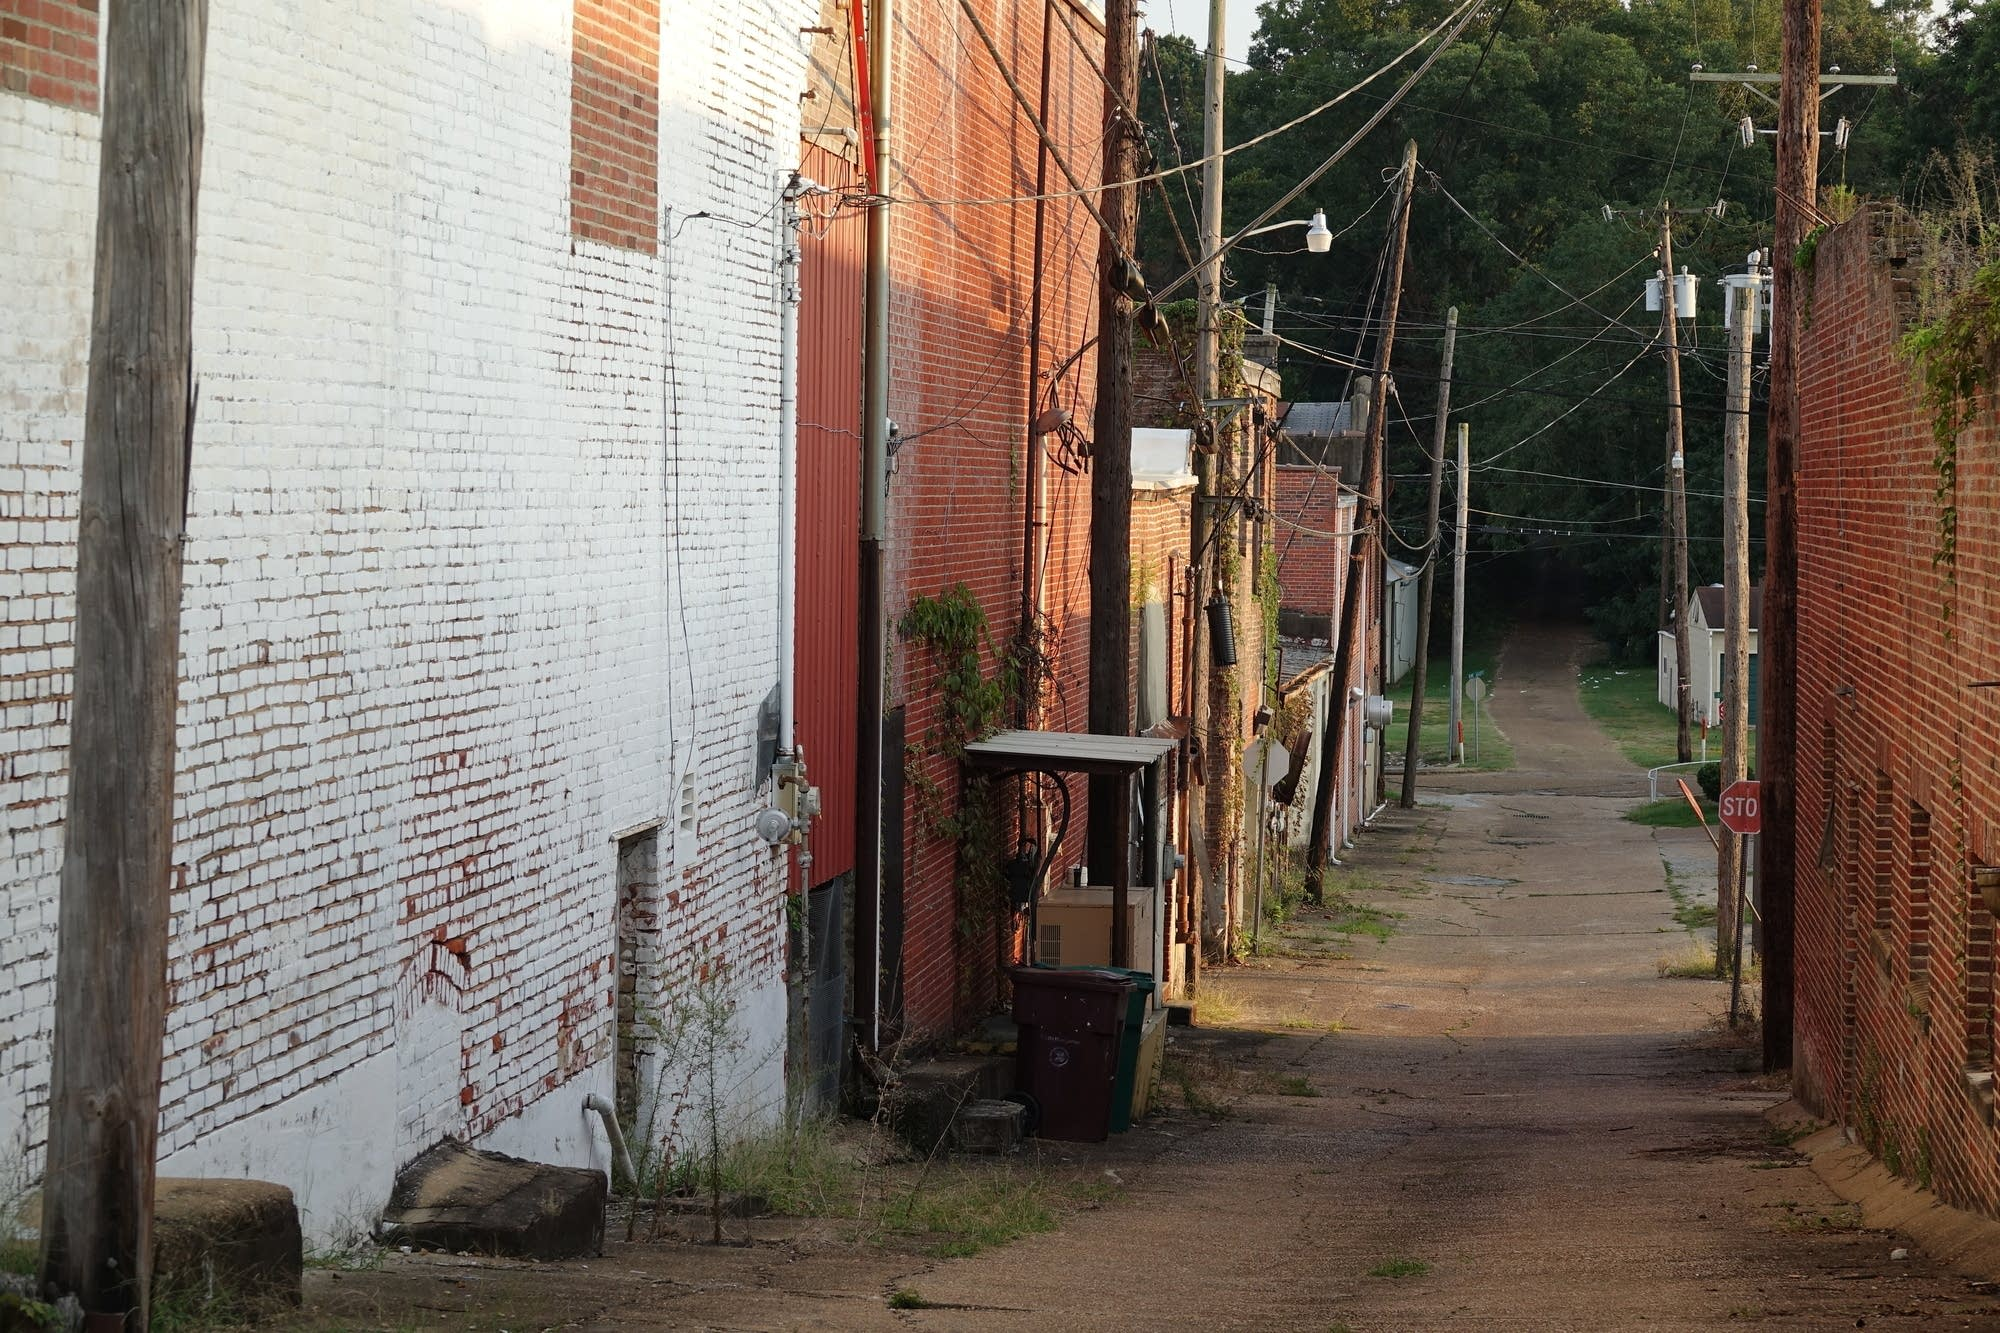 The alley behind Tardy Furniture in Winona, Mississippi.